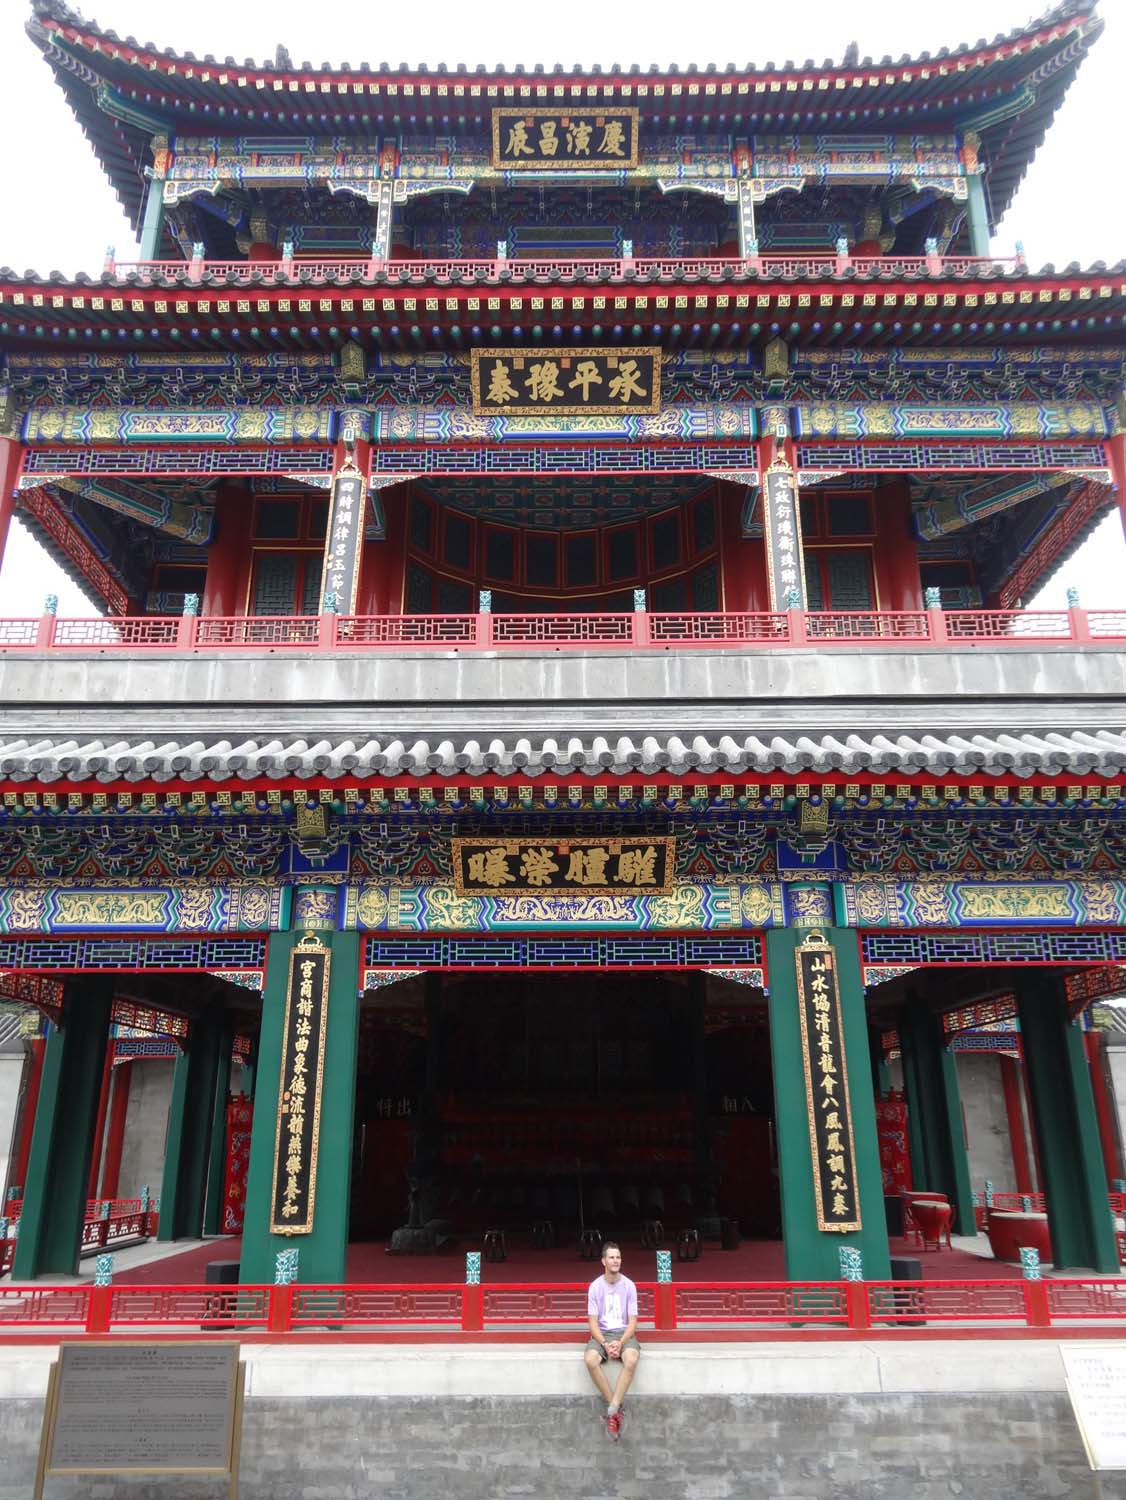 Opera at the Summer Palace